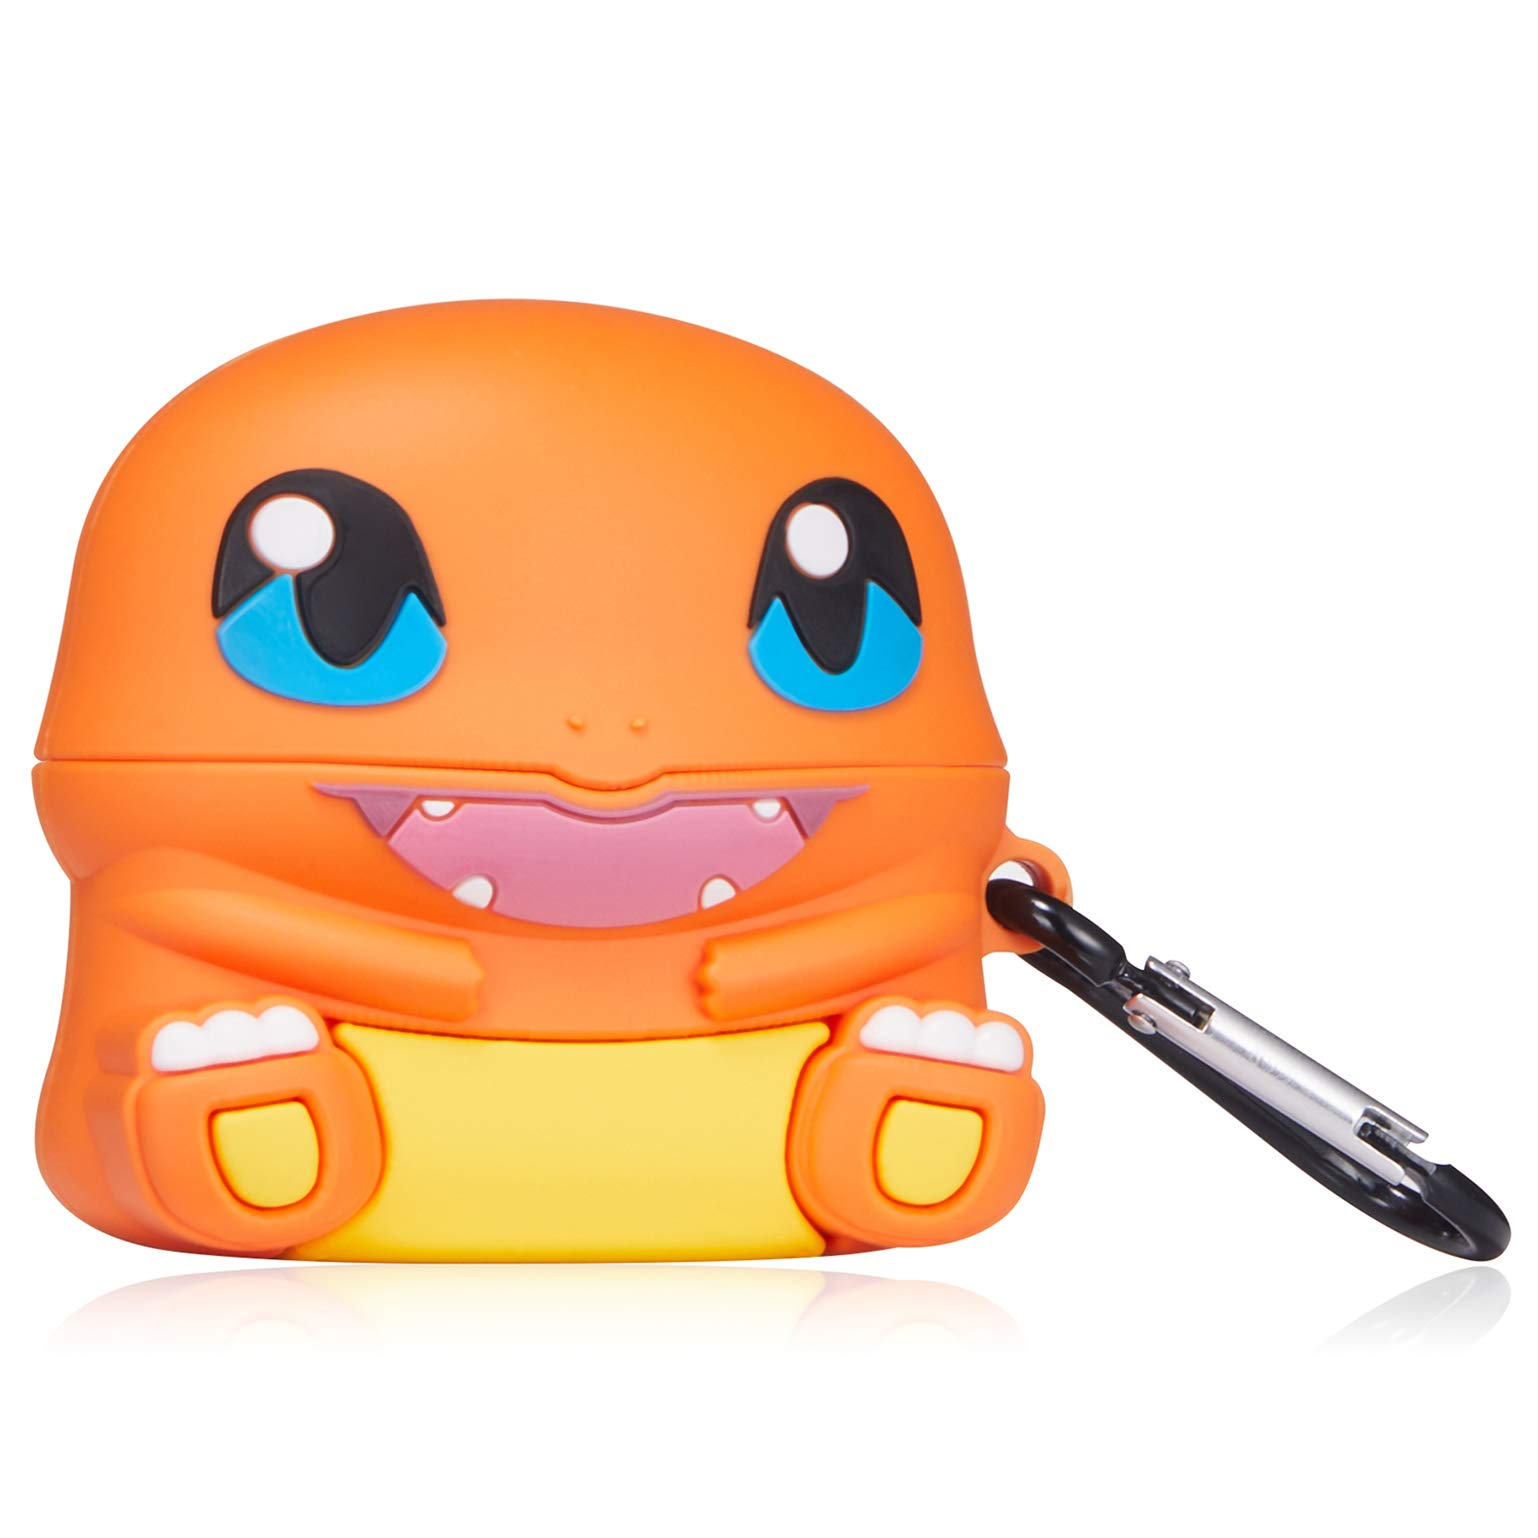 Gift-Hero for Airpods Pro/for Airpods 3 Case, Cute 3D Cartoon Kawaii Animal Character Silicone Shockproof Cover Designer Skin, Cool Fun Funny Fashion Case for Girls Kids Teens Air pods 3 (Fire Dragon)